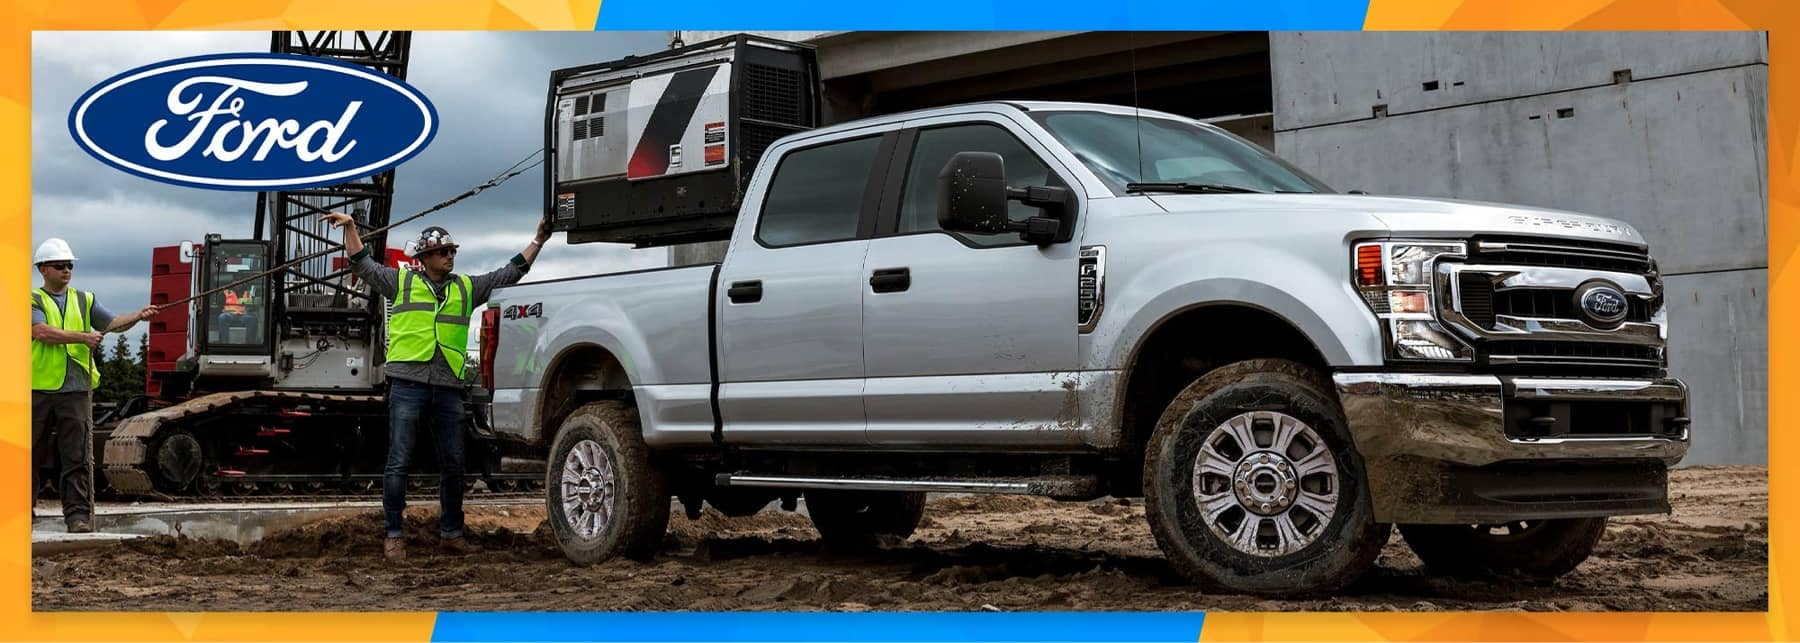 Ford F150 at a worksite